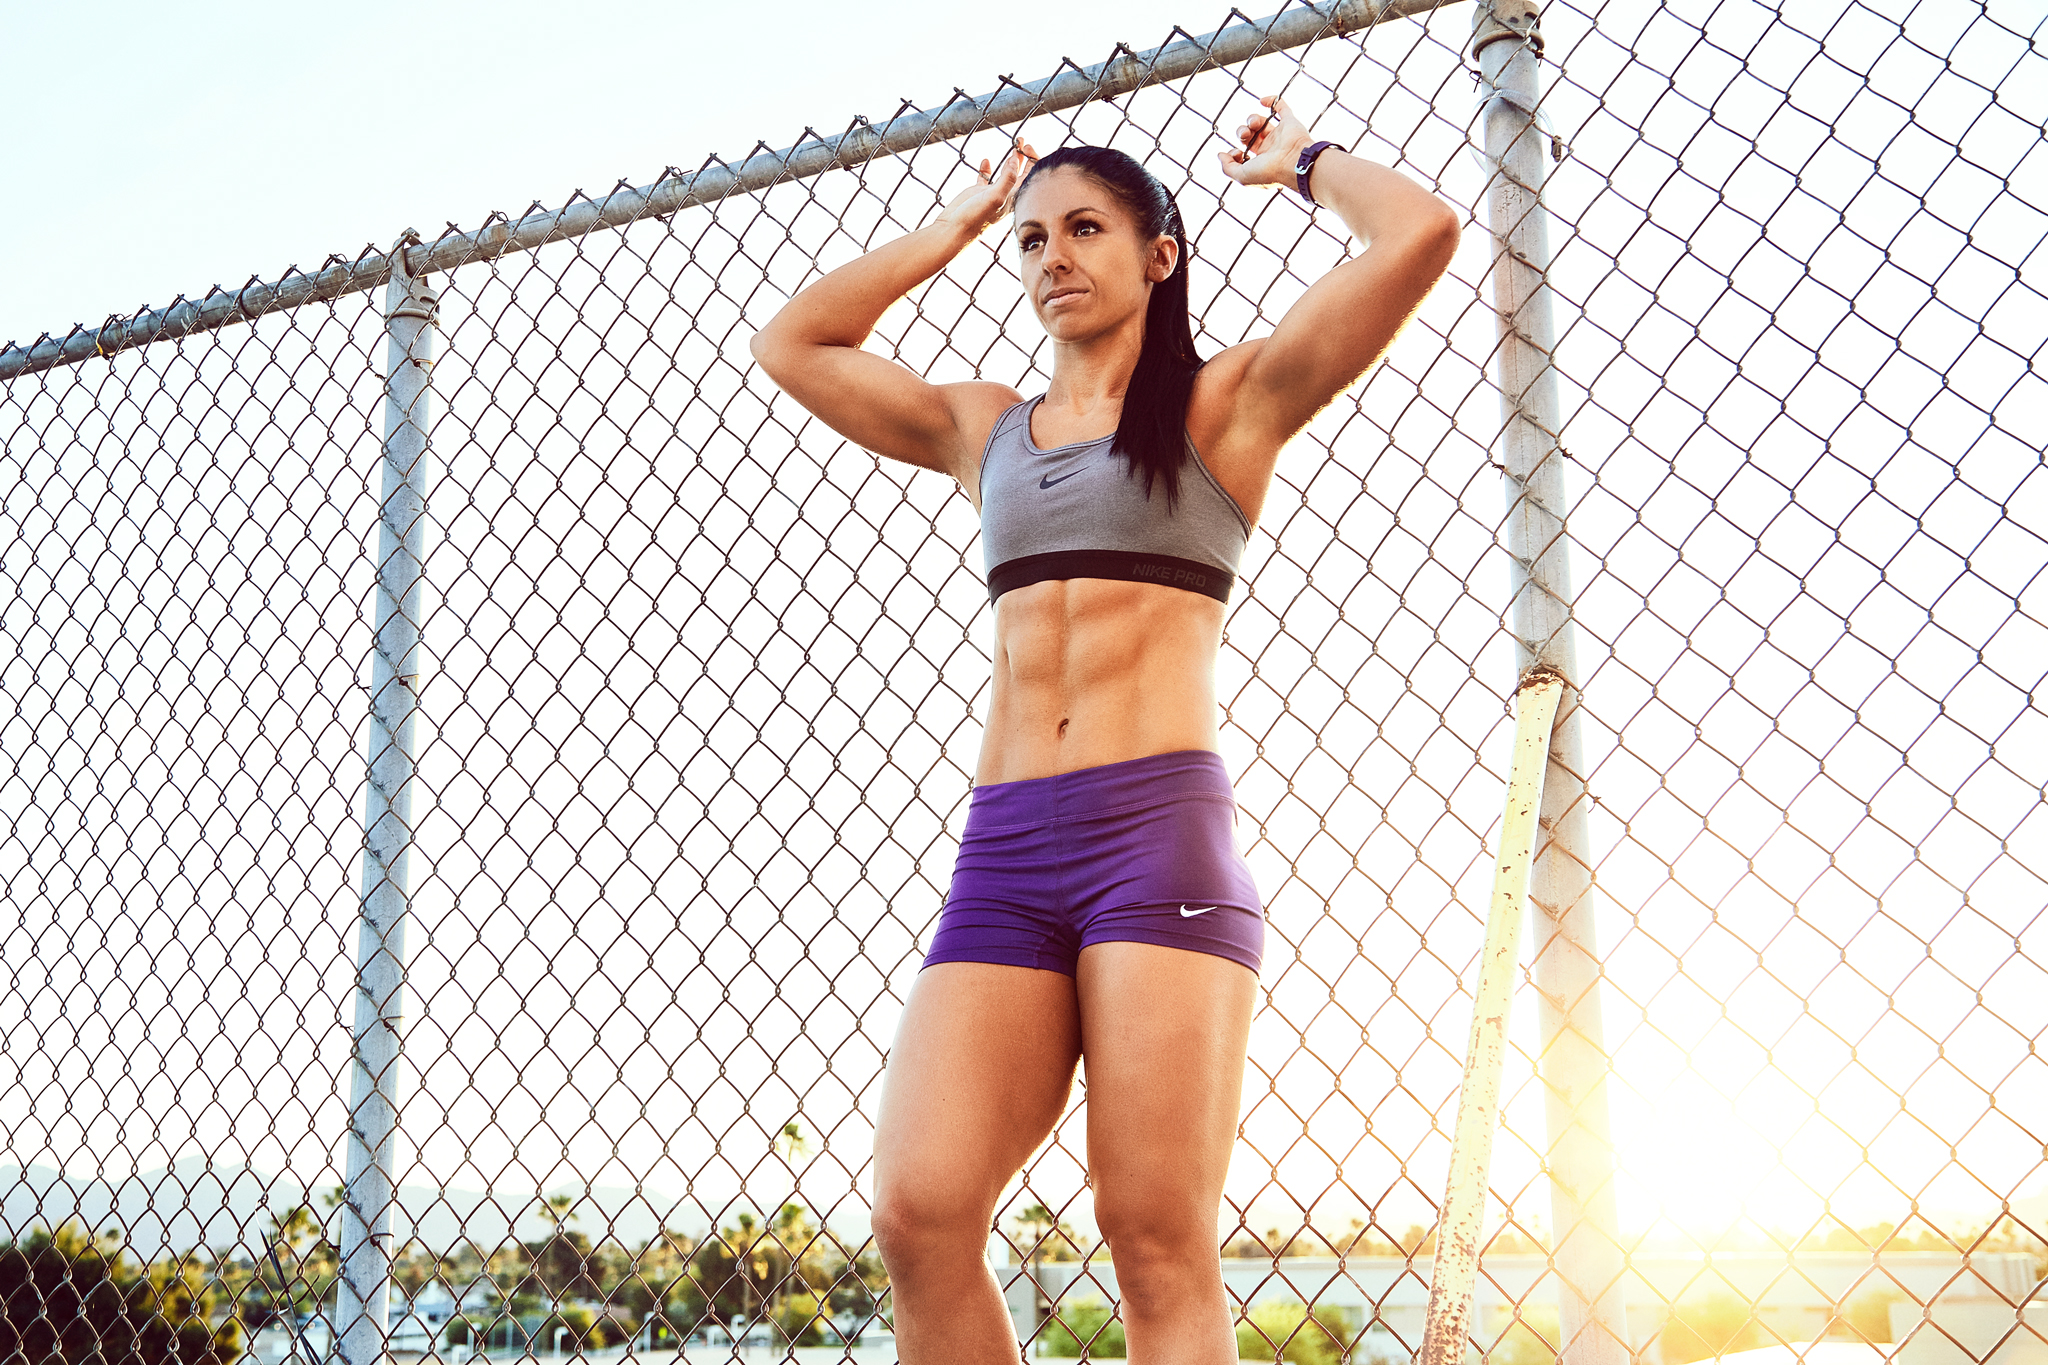 Nike Fitness Model - April Bleicher - Lifestyle Photos